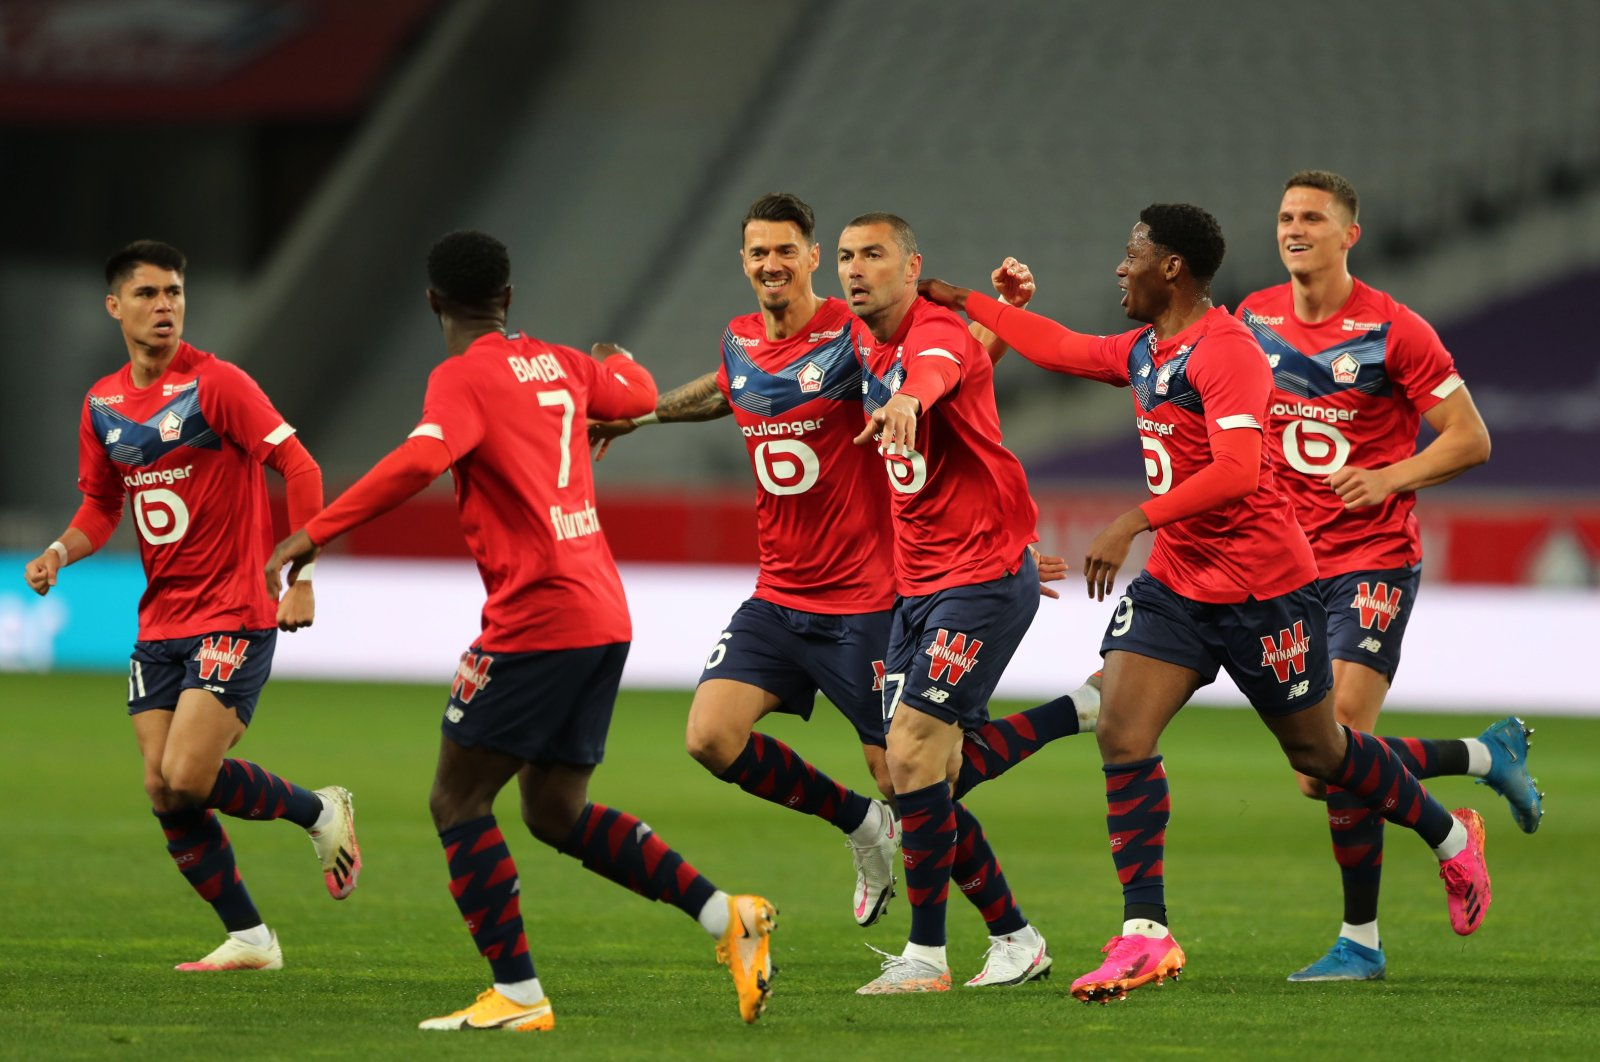 Lille's Burak Yılmaz (C) celebrates scoring his team's first goal with teammates againstNice at Stade Pierre-Mauroy, Lille, France, May 1, 2021.